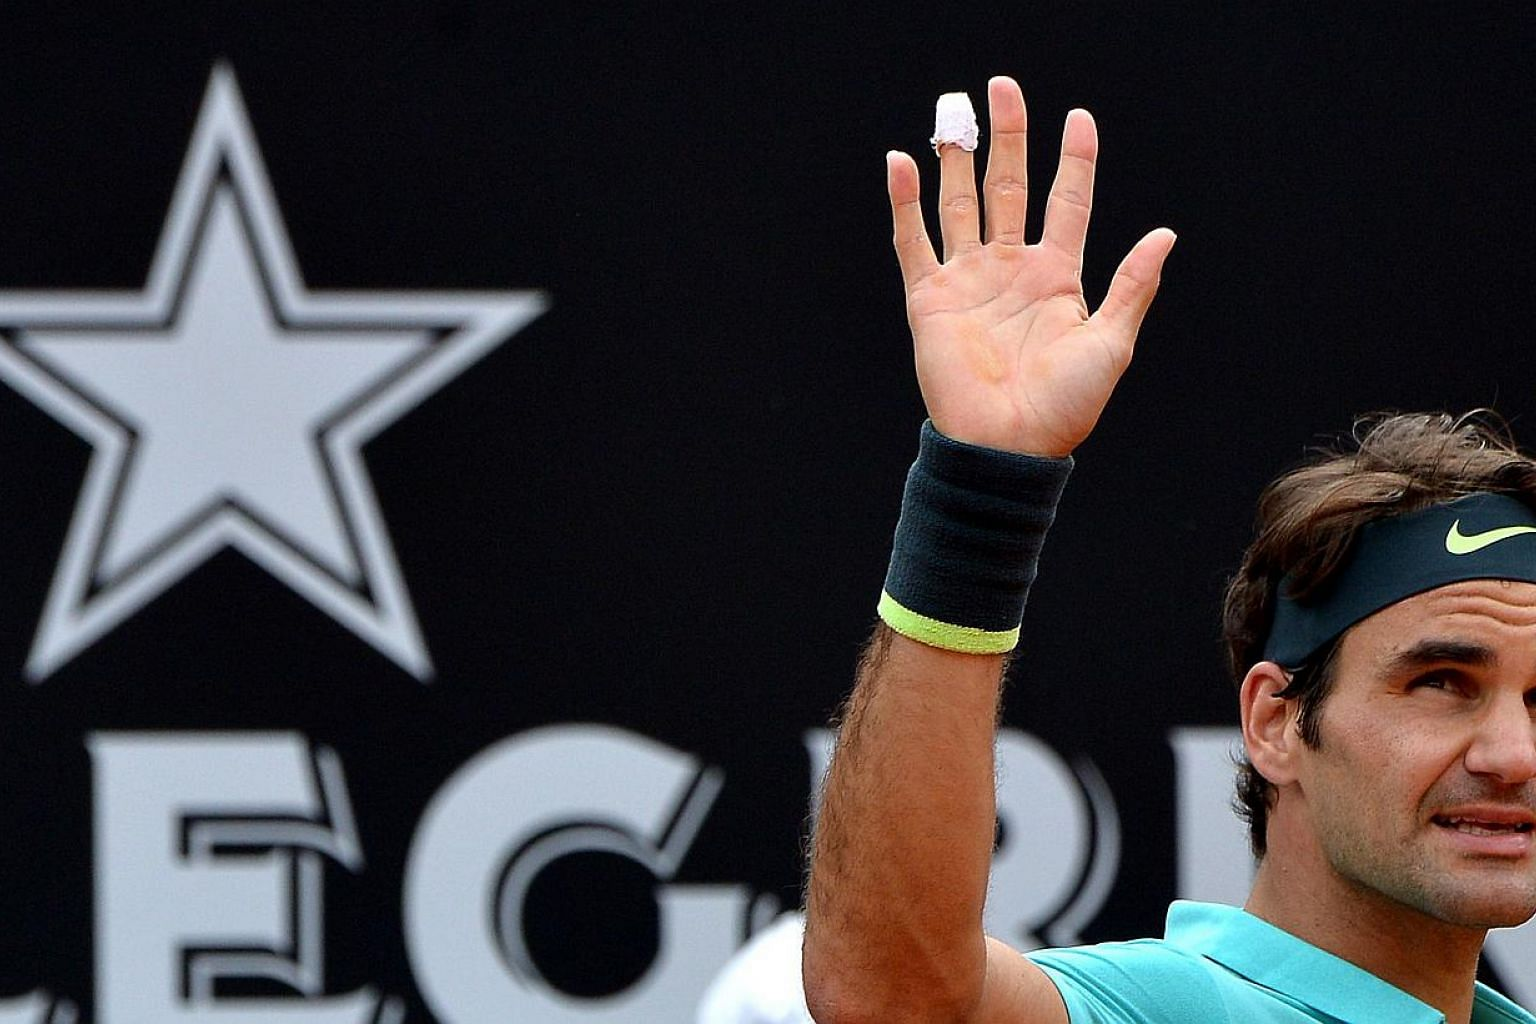 Swiss tennis player Roger Federer celebrates after winning against South African Kevin Anderson during the Italian Open on May 14, 2015 in Rome. -- PHOTO: AFP